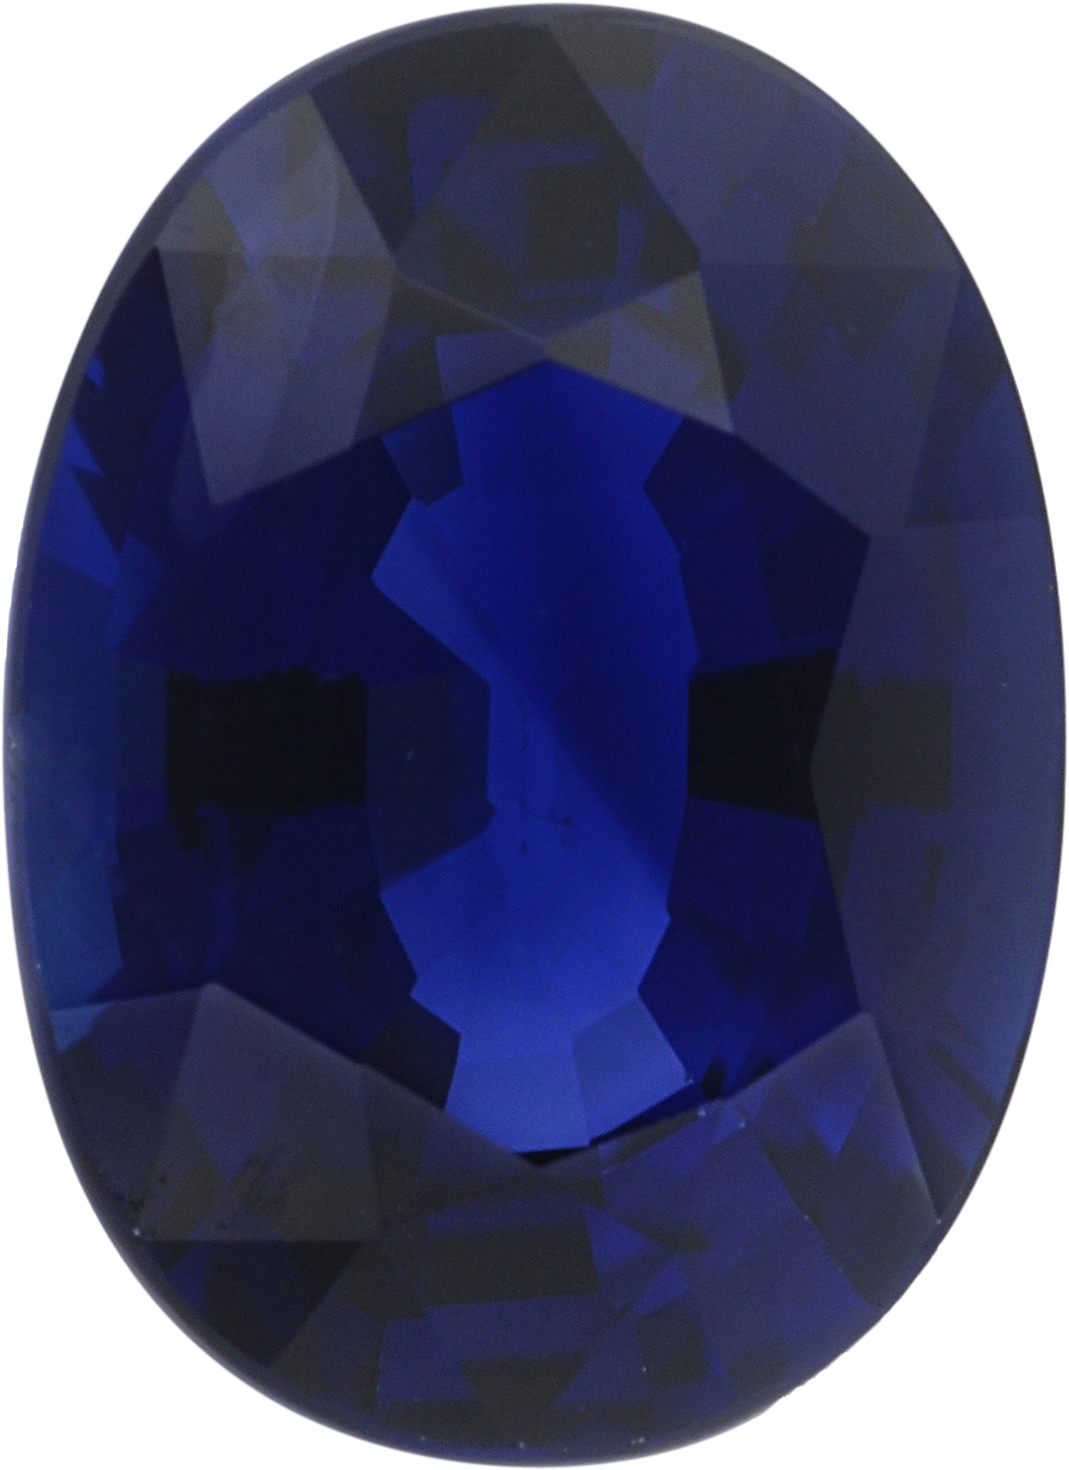 1.12 carats Blue Loose Sapphire Gemstone in Oval Cut, 7.29 x 5.27 mm